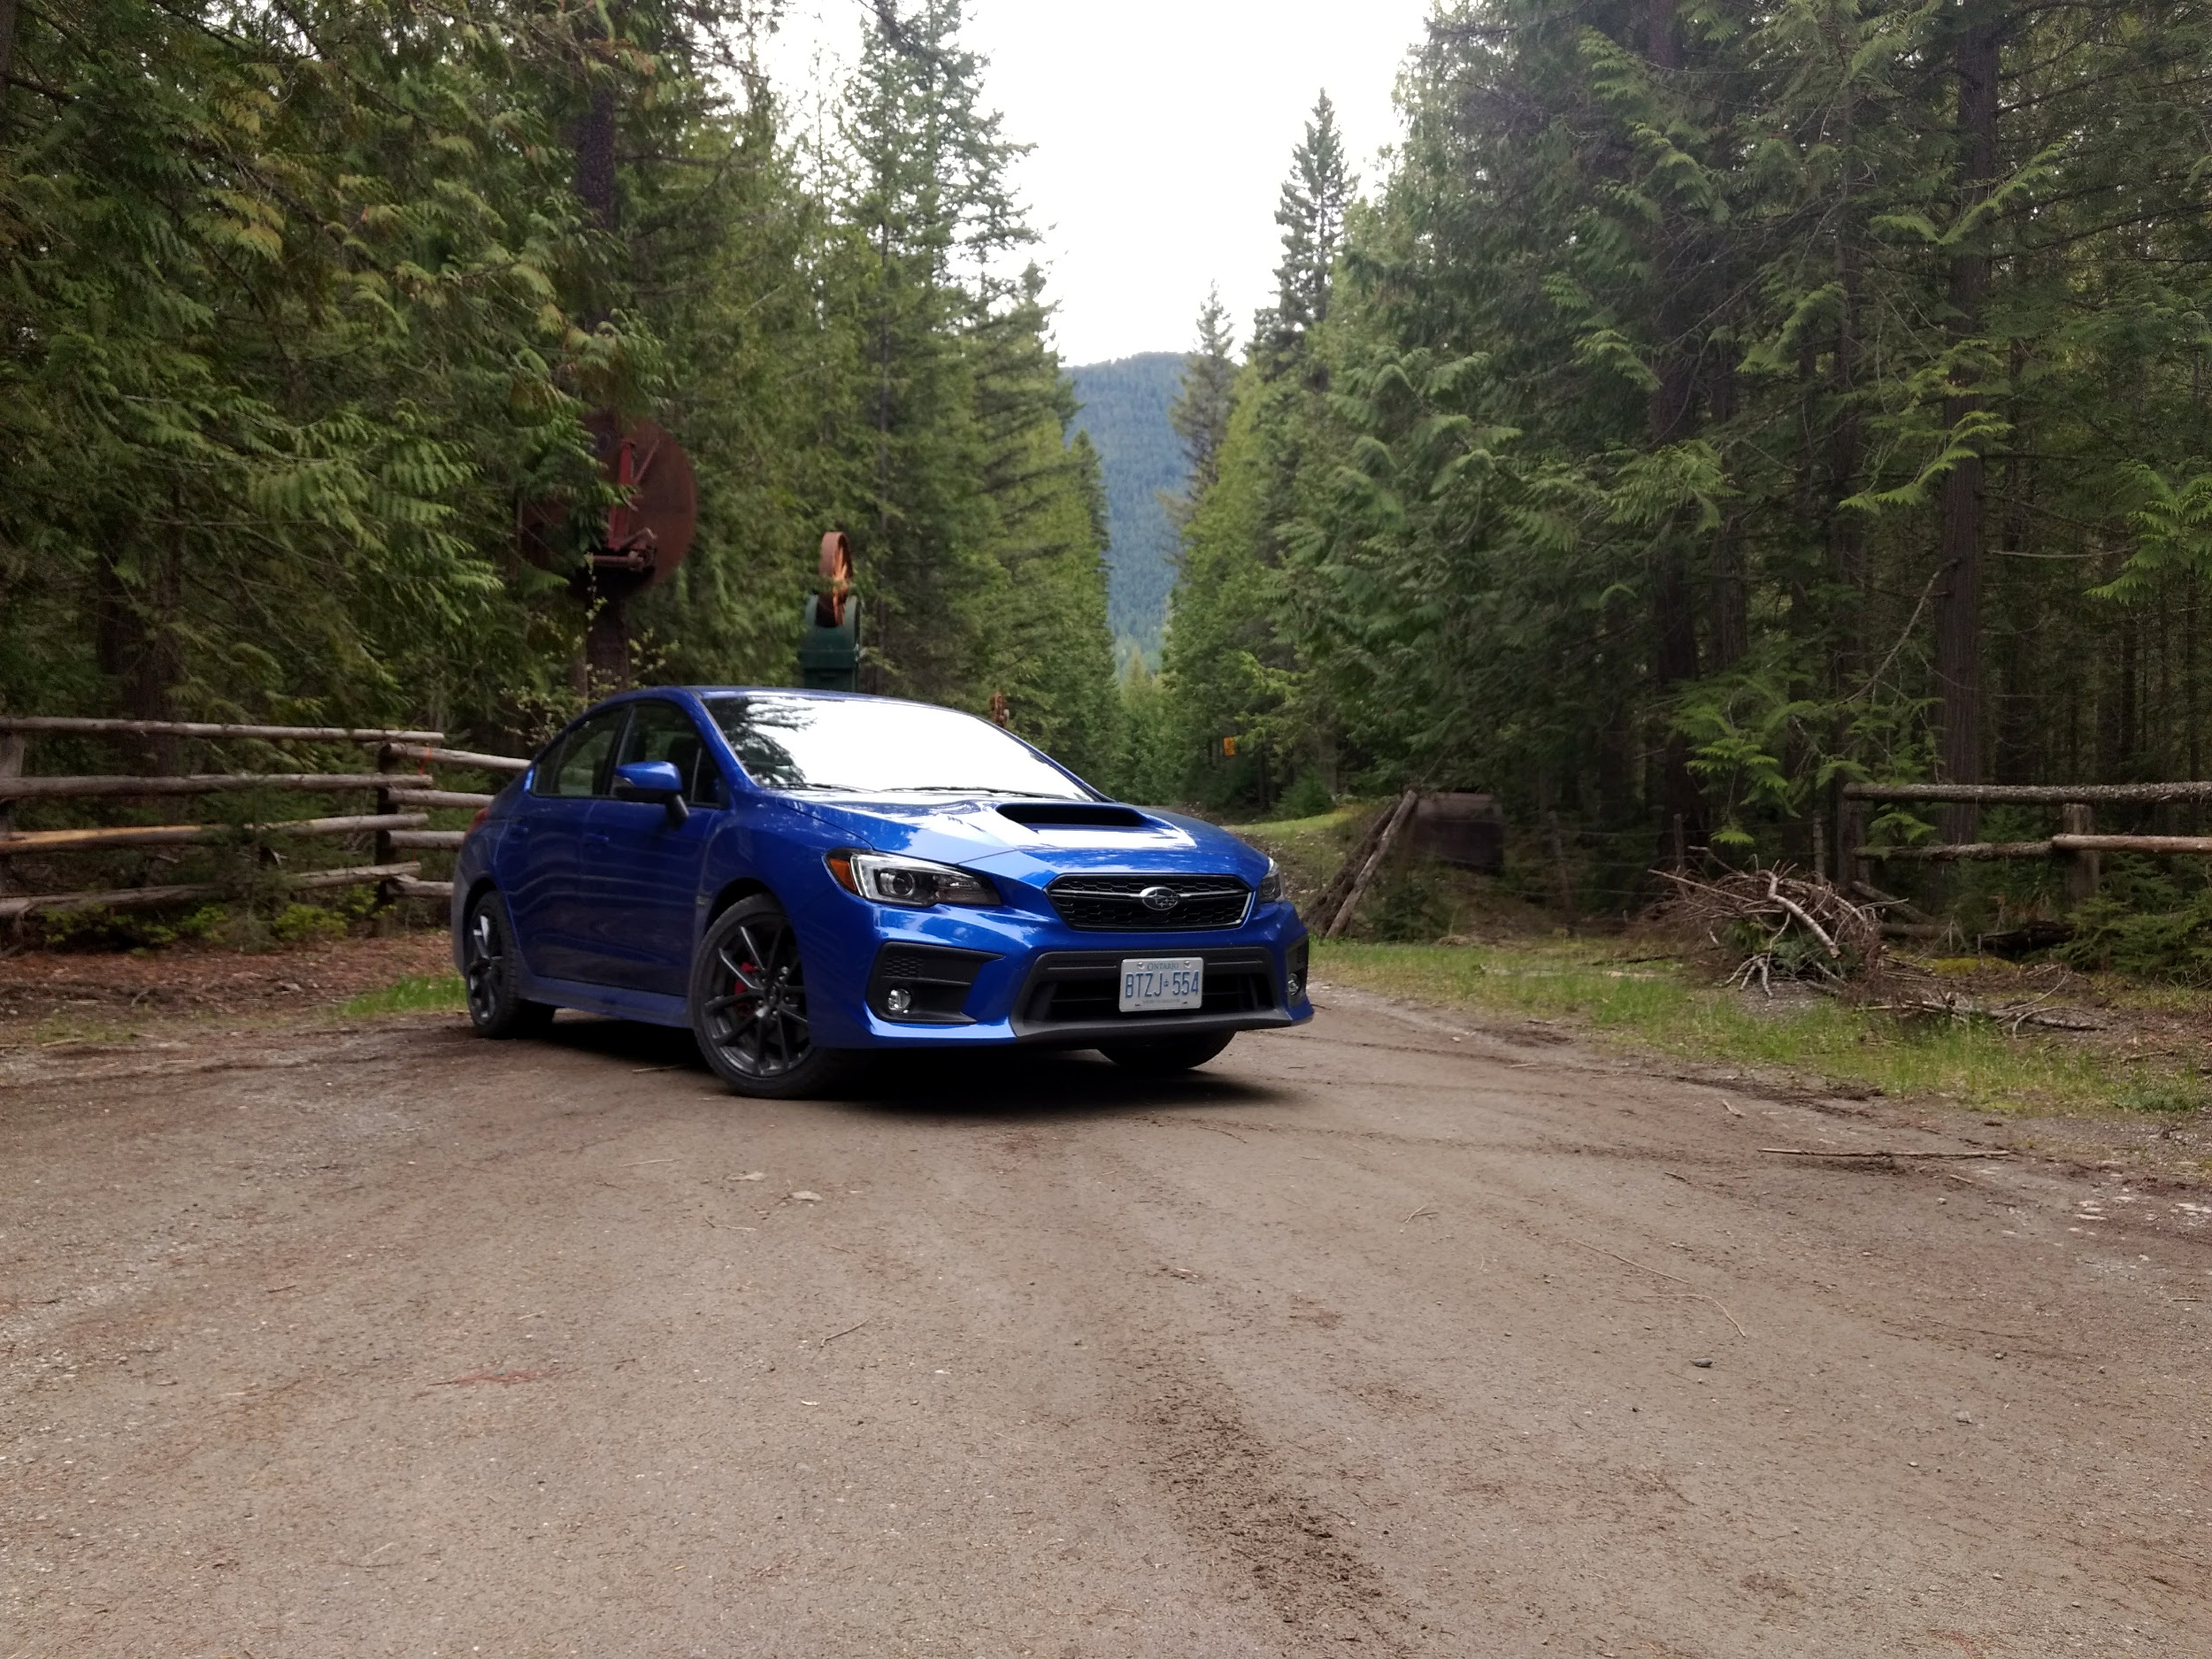 2018 Subaru Wrx Review 1